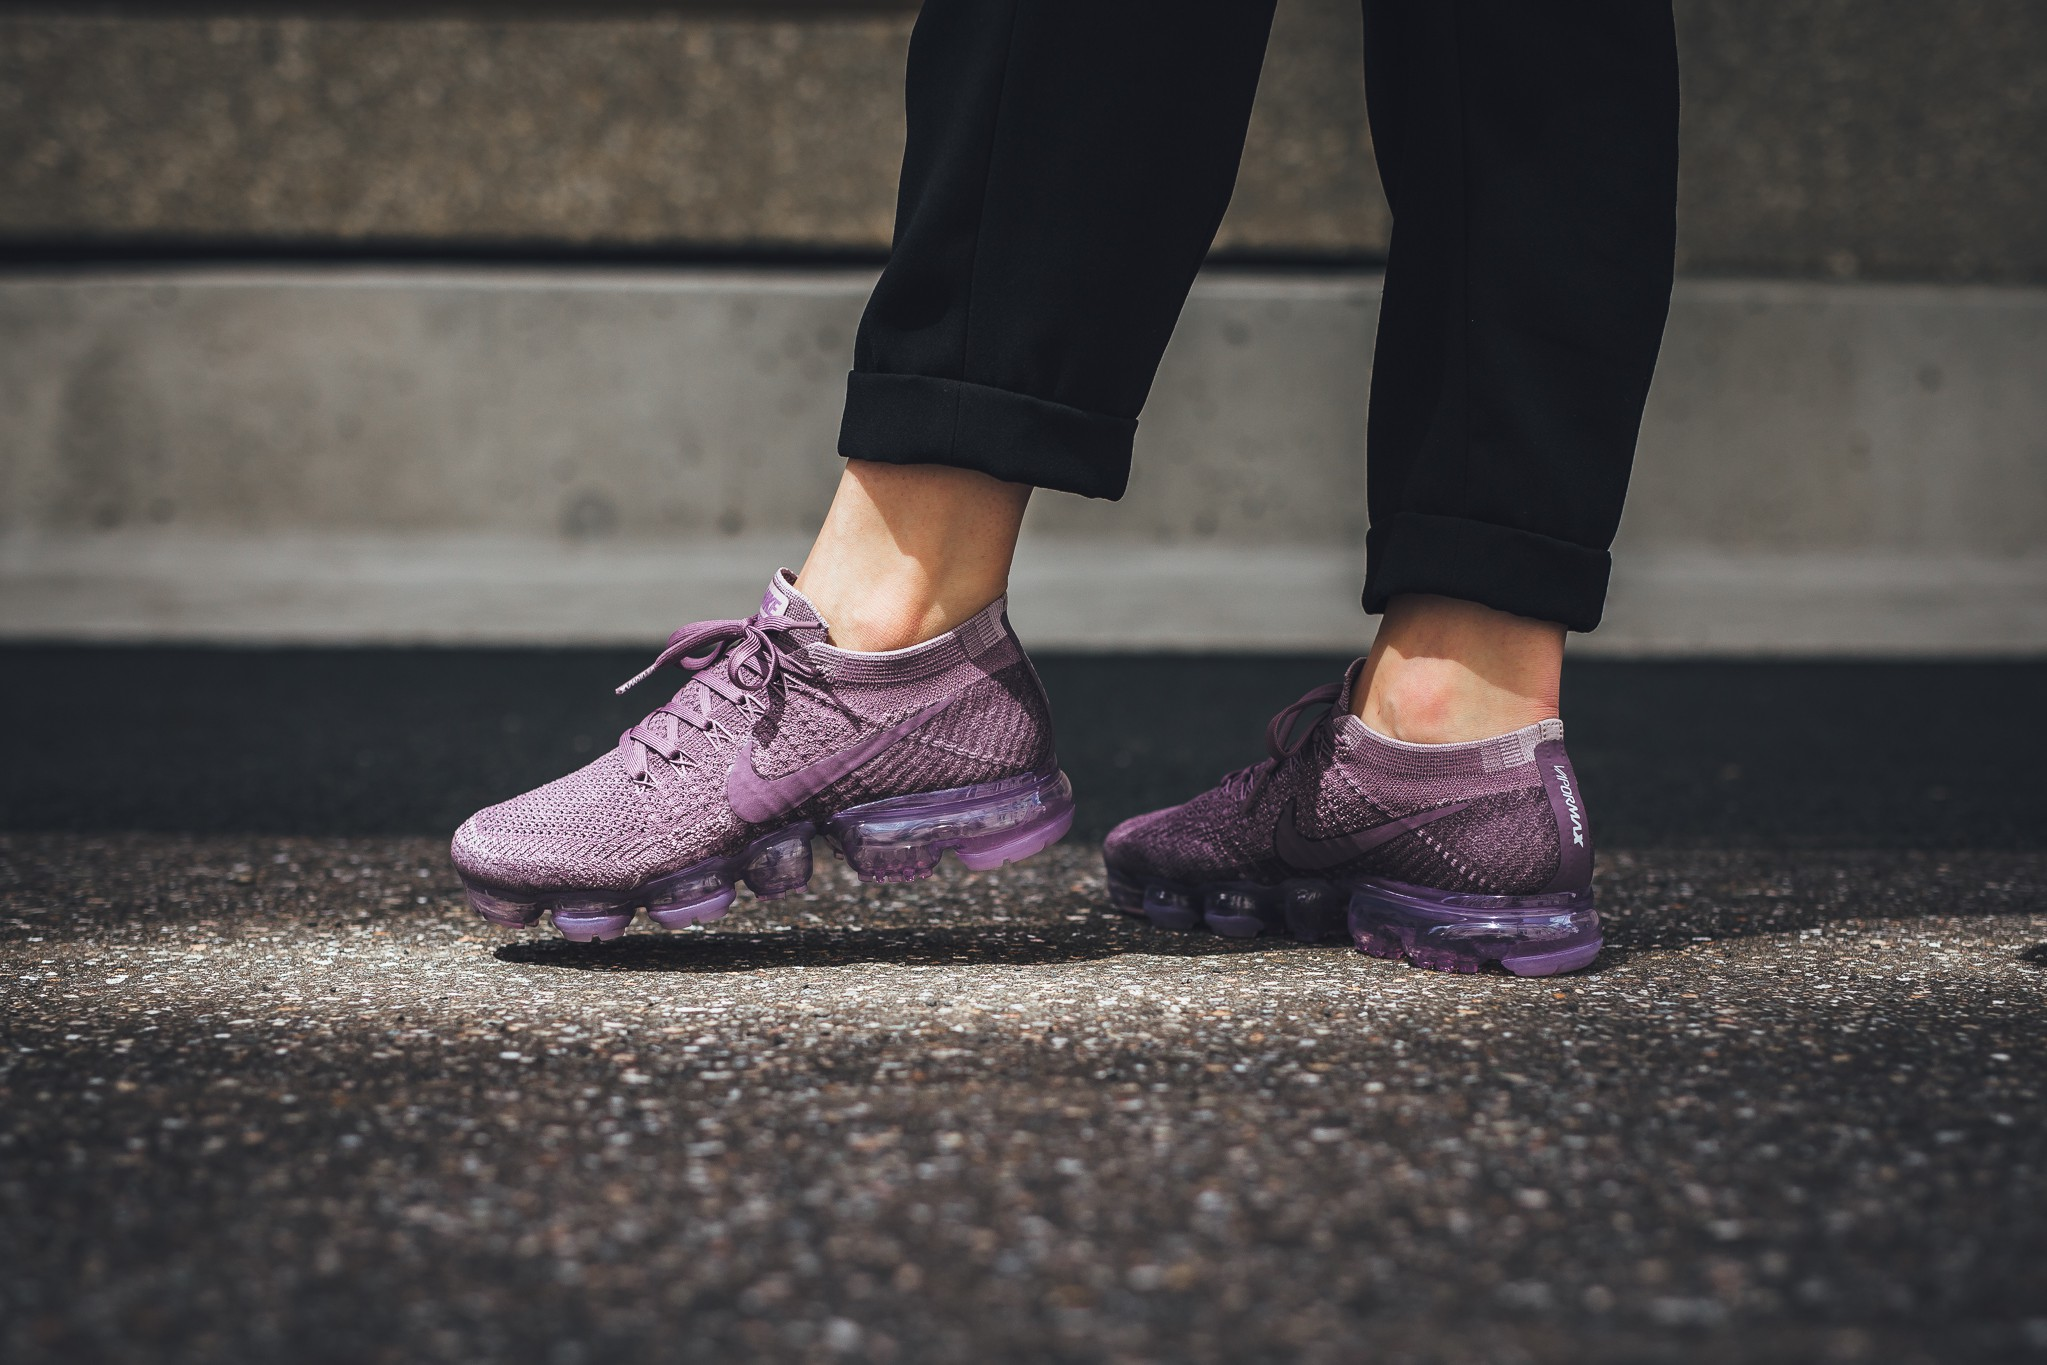 new styles 7f80a d7517 Release Reminder: Nike Air VaporMax Violet Dust ...